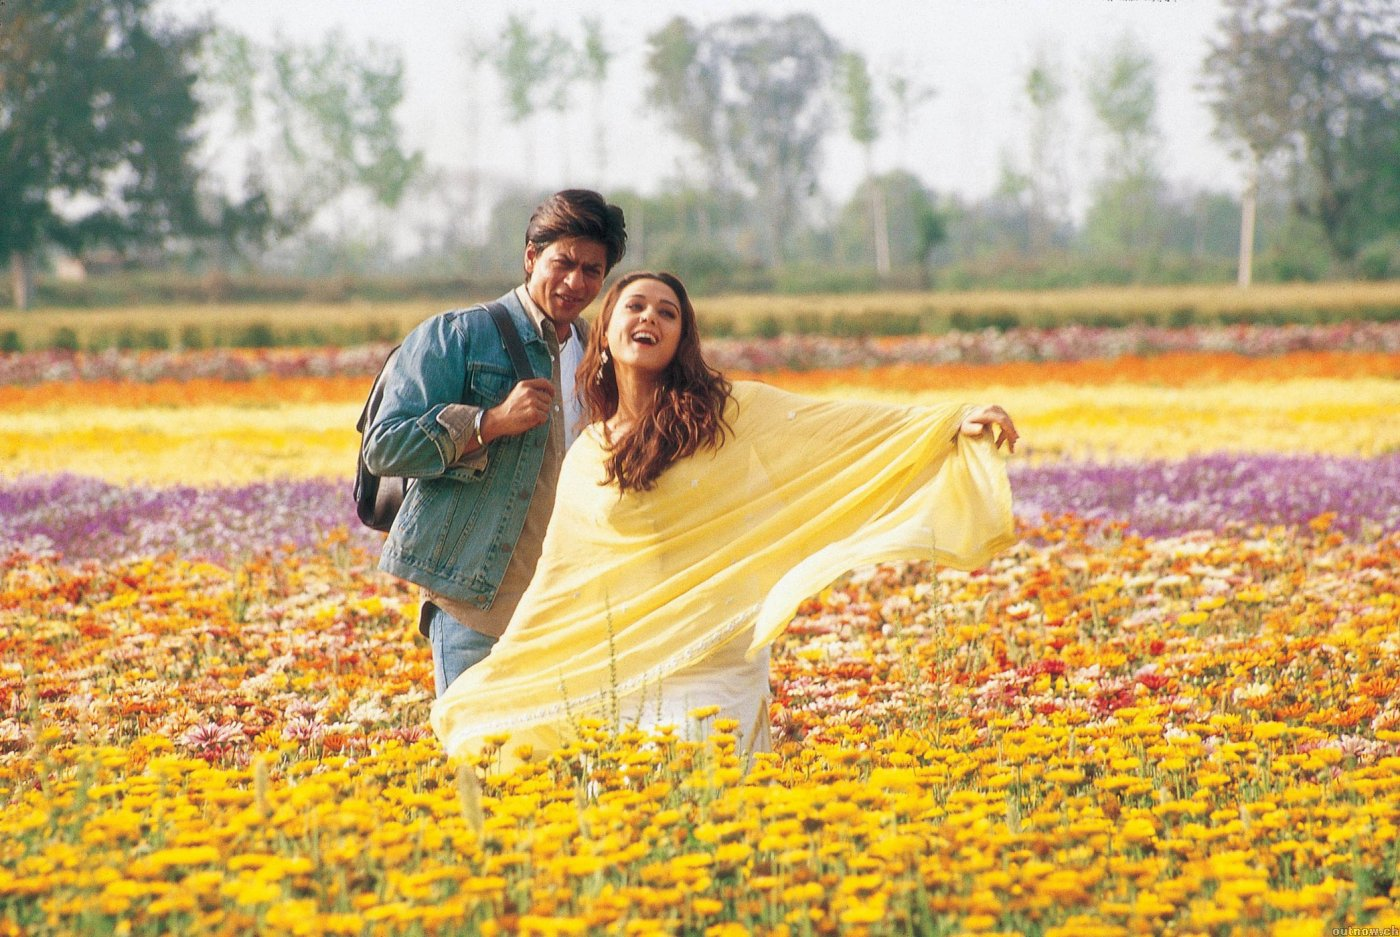 I-m-still-not-sick-of-watching-bollywood-lovers-frolic-through-fields-of-flowers-Veer-Zaara-wallpaper-wp4408160